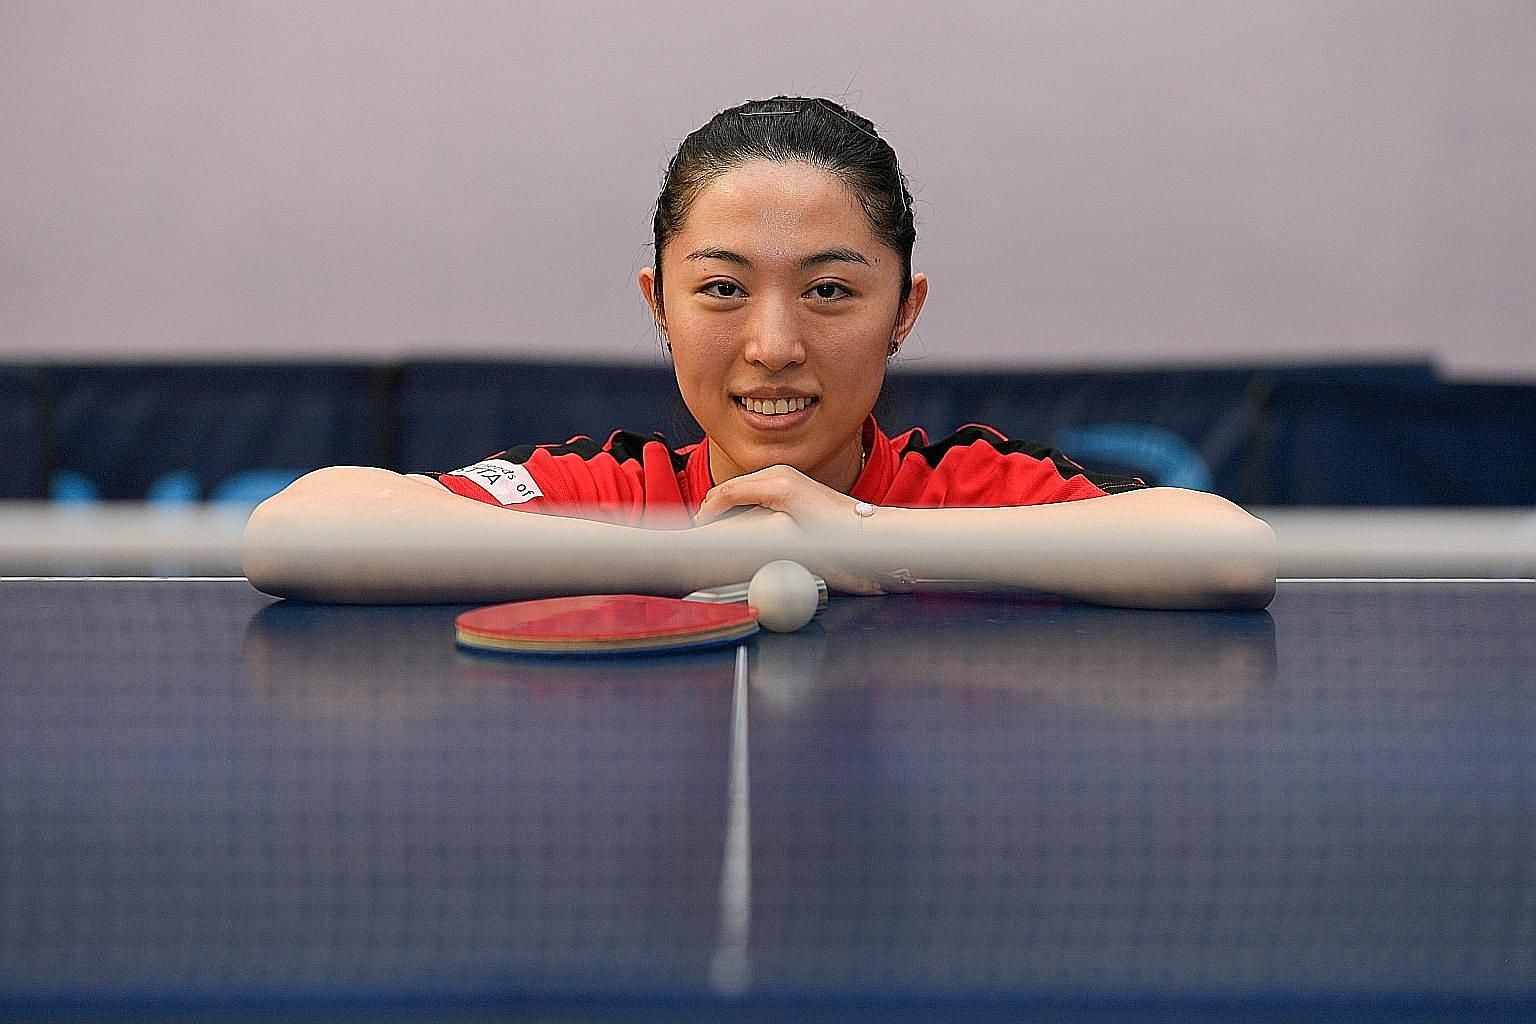 Yu Mengyu's goal is to win a medal at next year's Tokyo Olympics, having lost in the singles quarter-finals at Rio 2016.